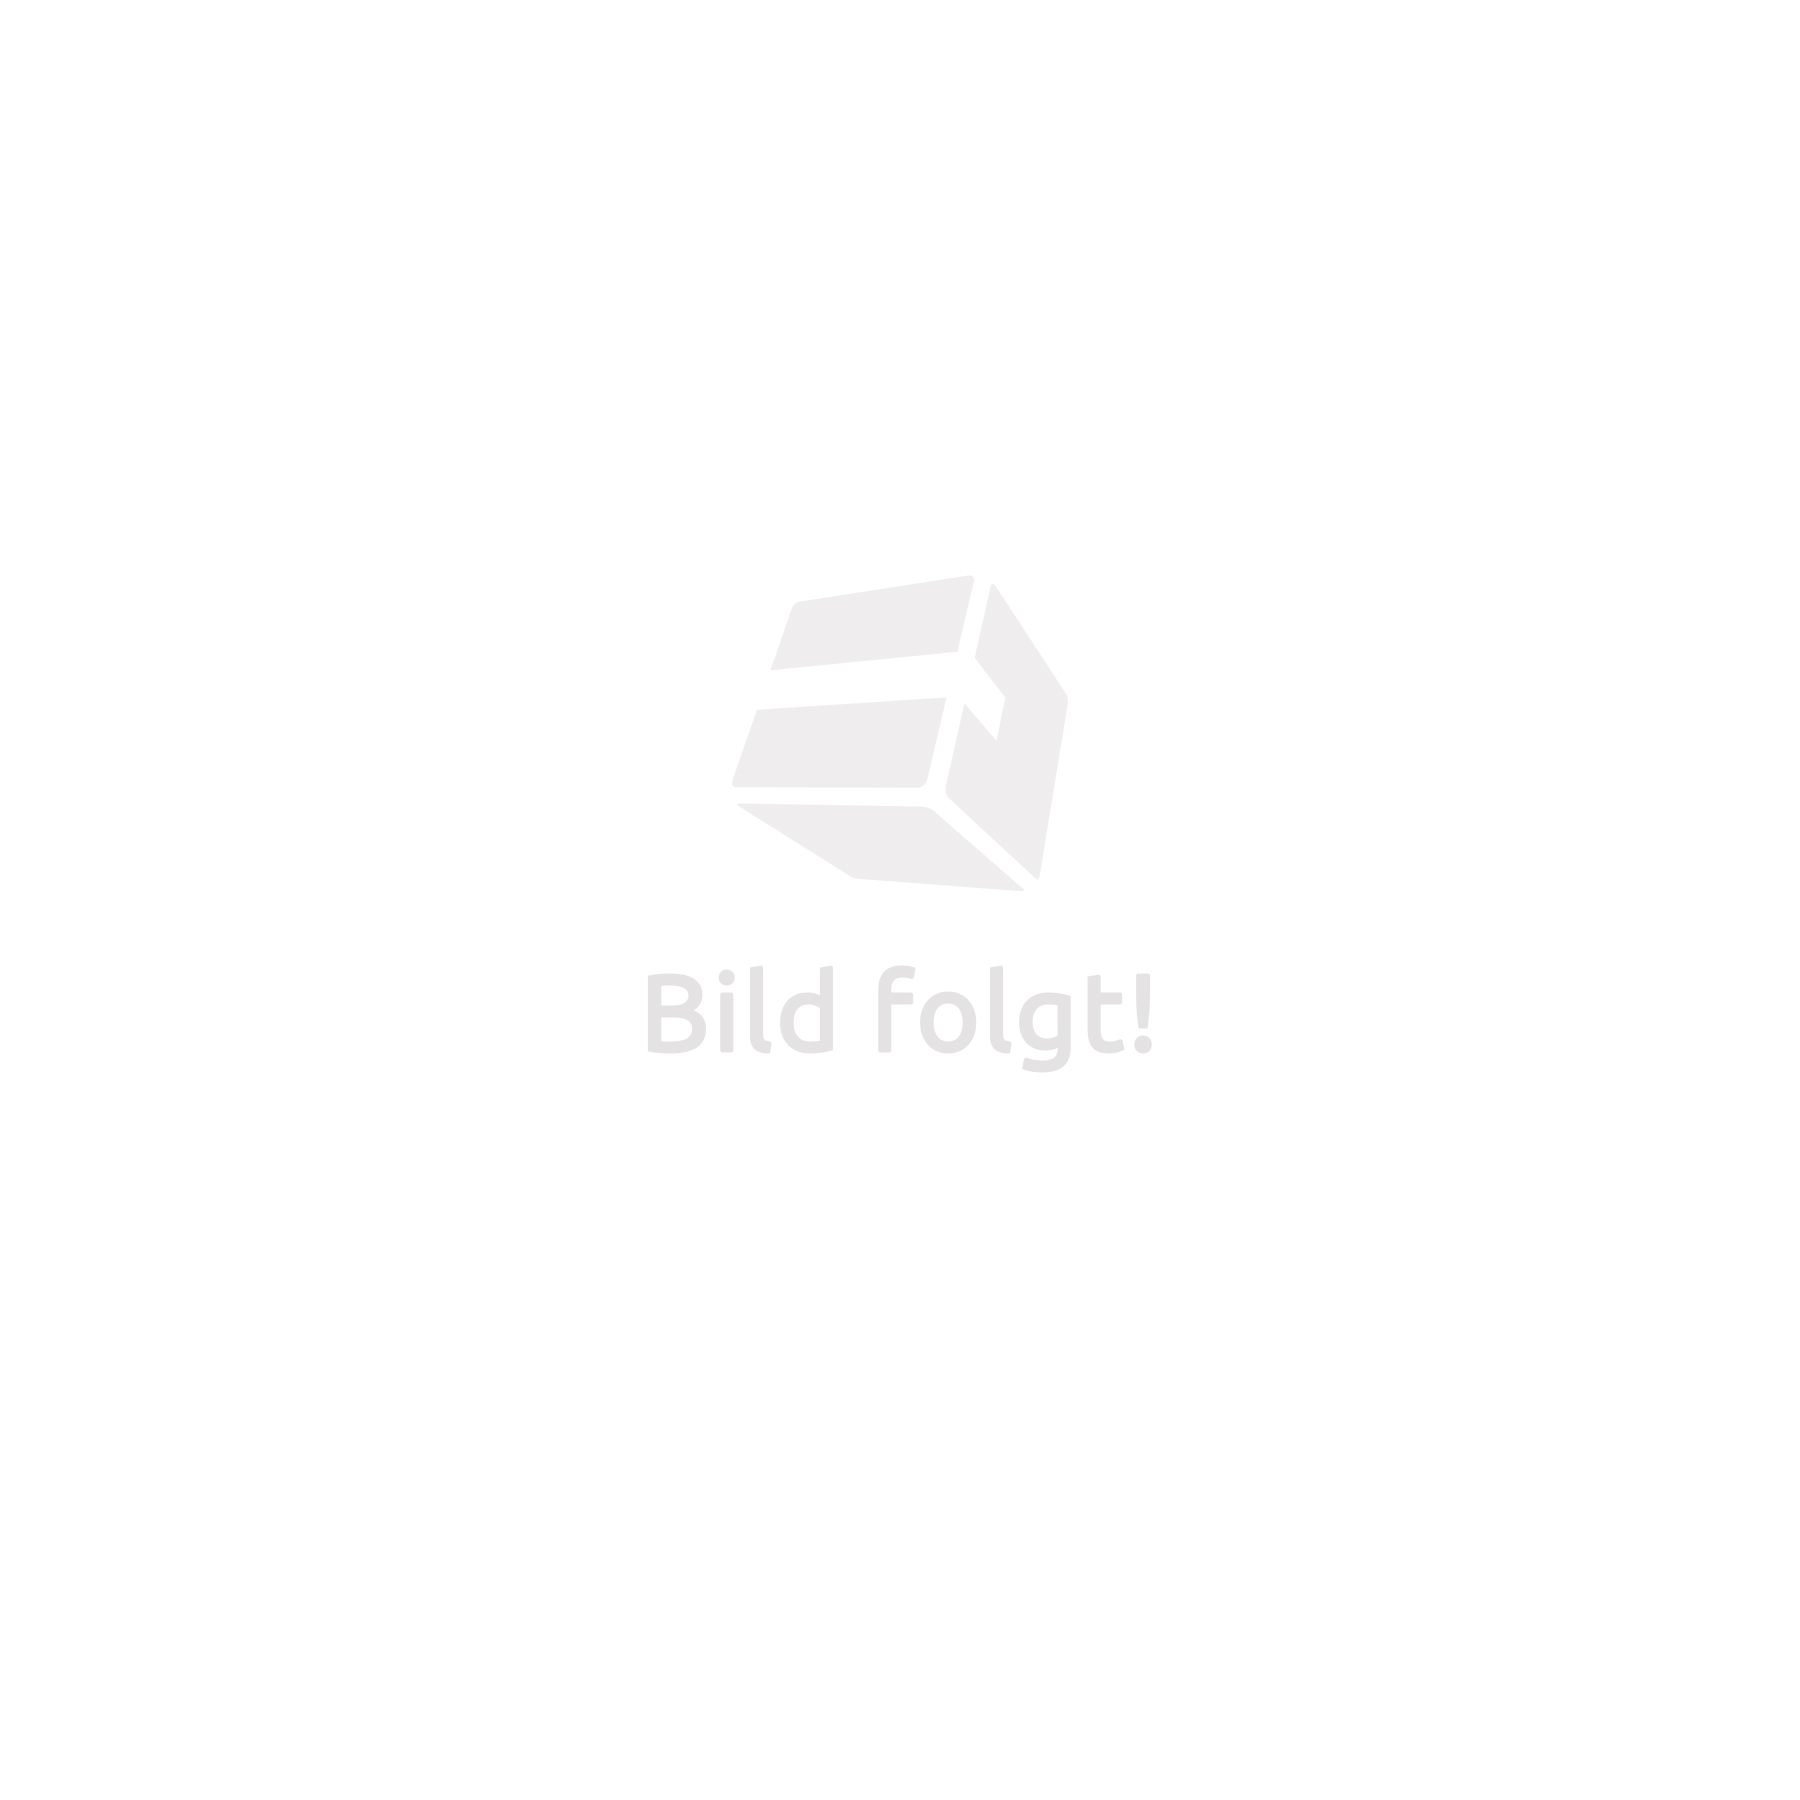 Soporte de pared para monitores de 32-55″ (82-138cm) inclinable y orientable nivel de aire